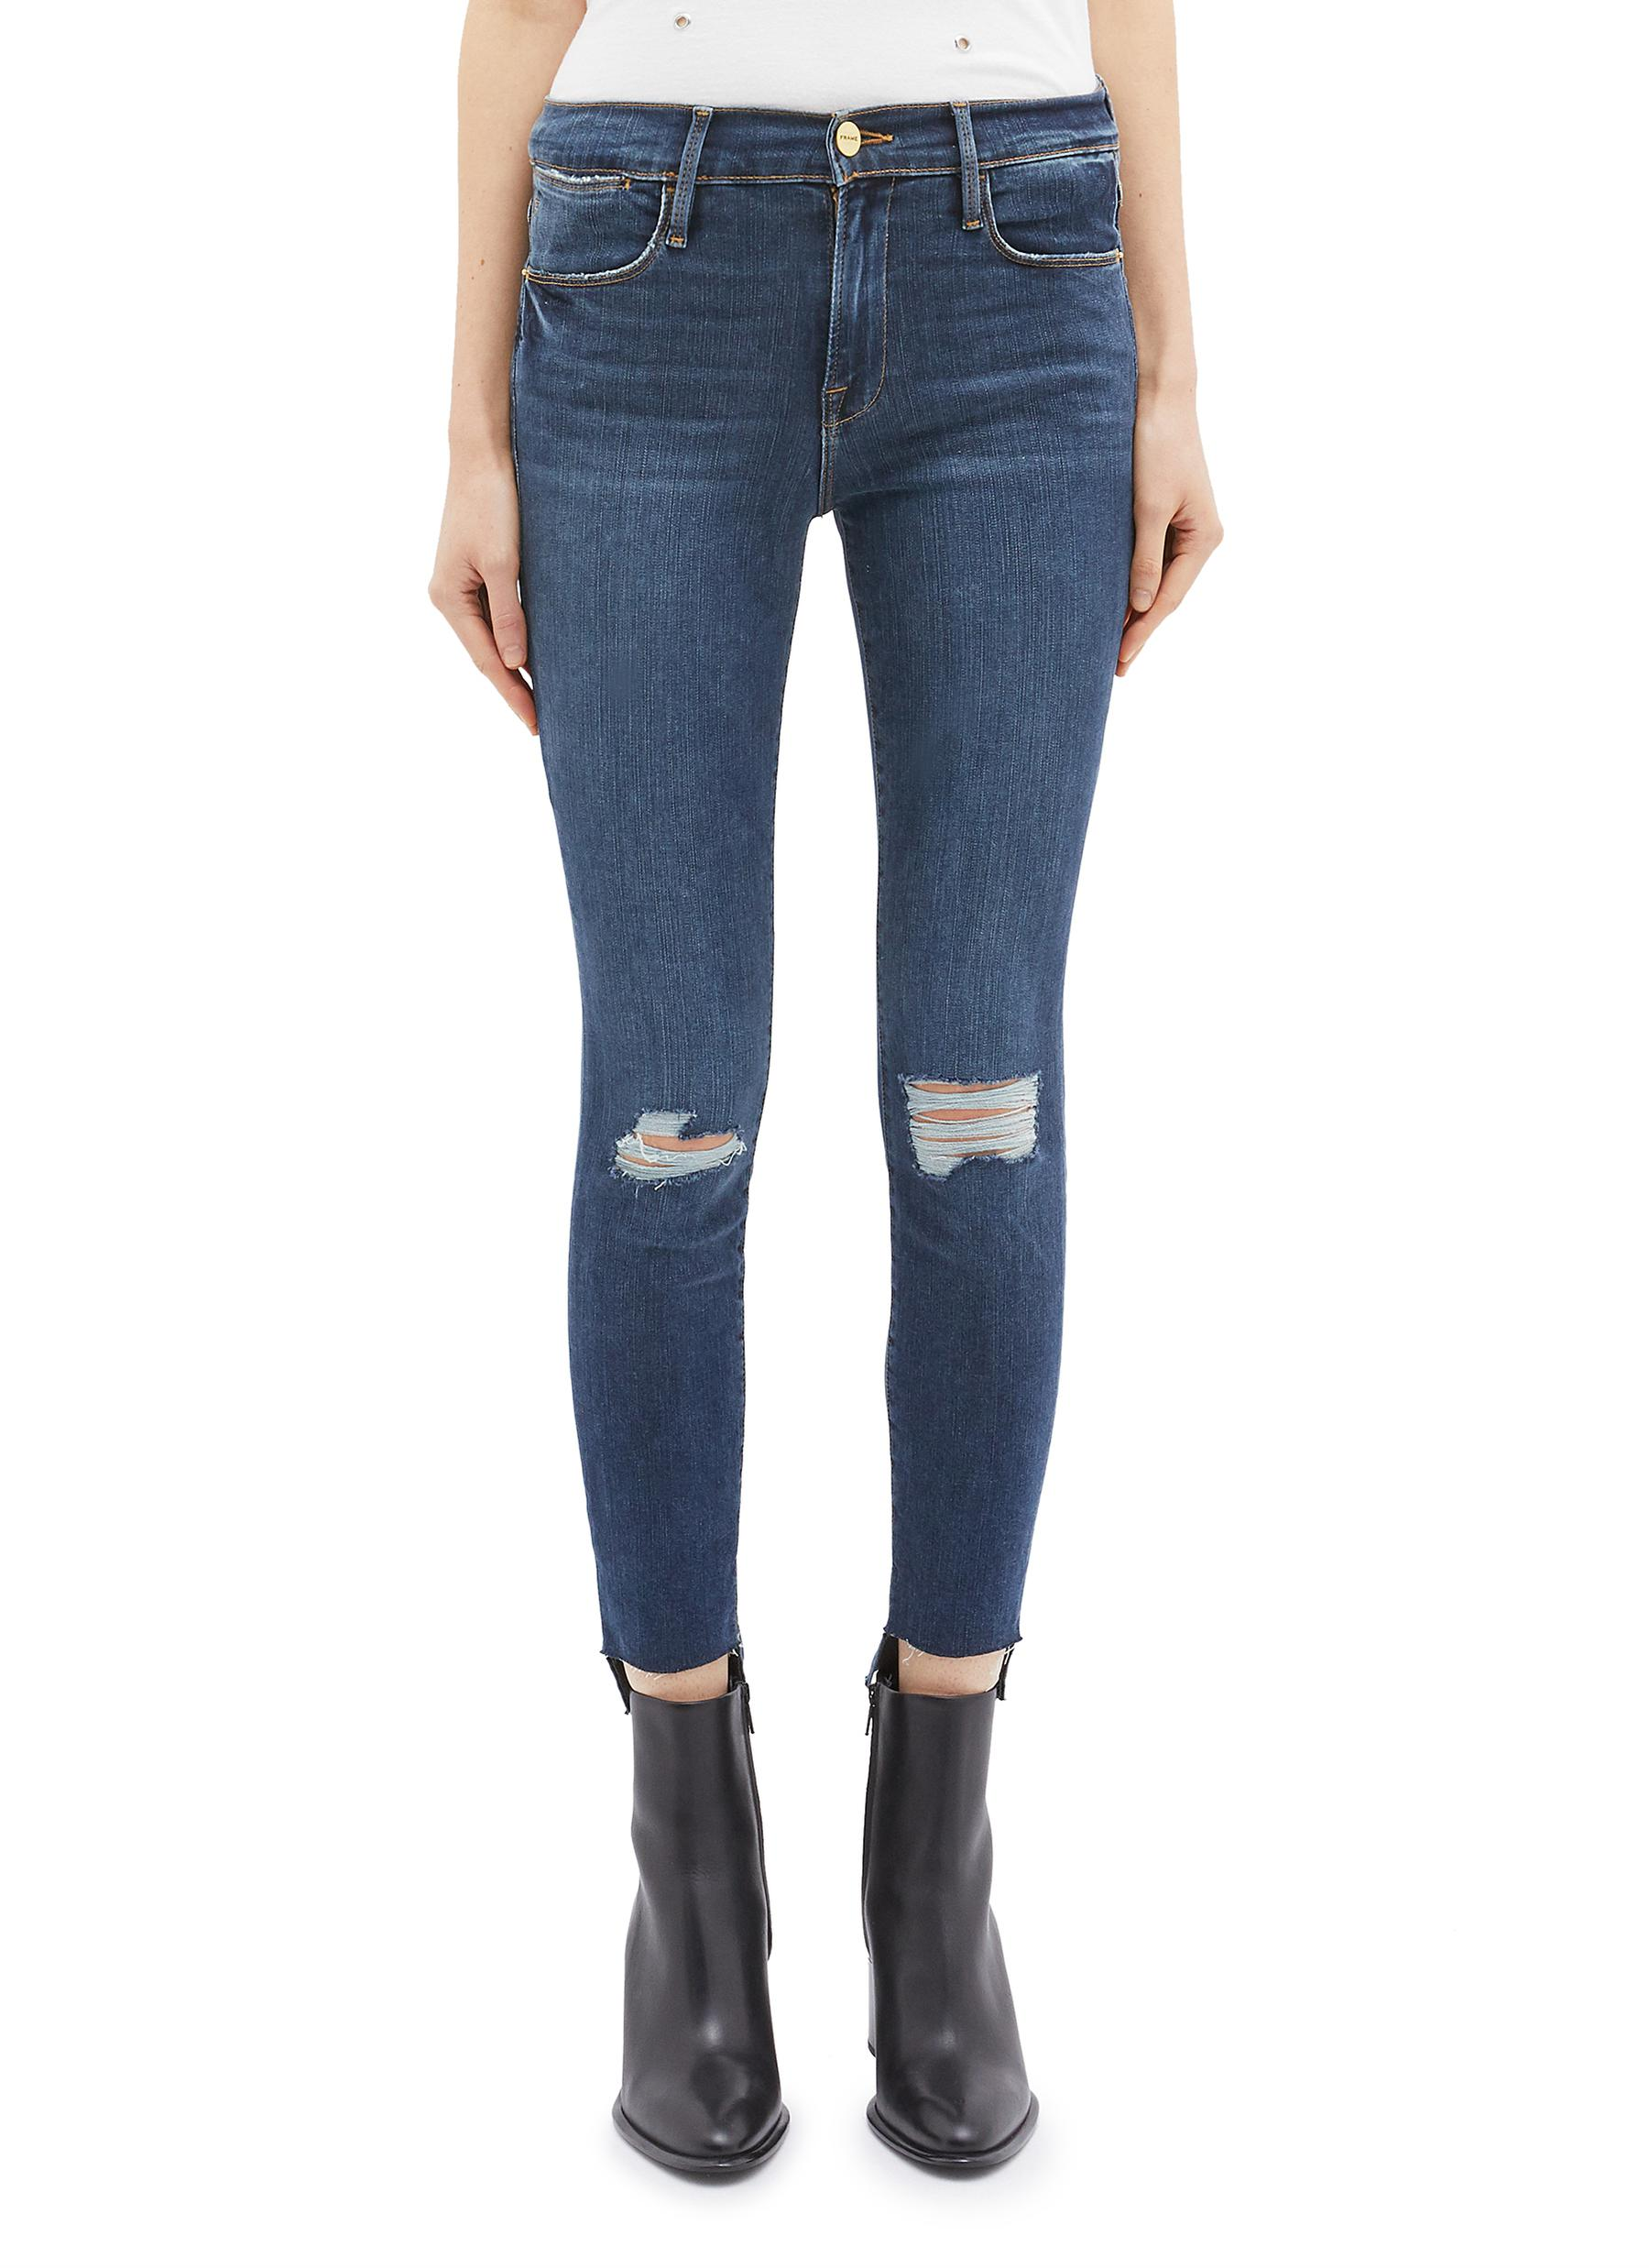 Buy High Crawford waist skinny jeans picture trends